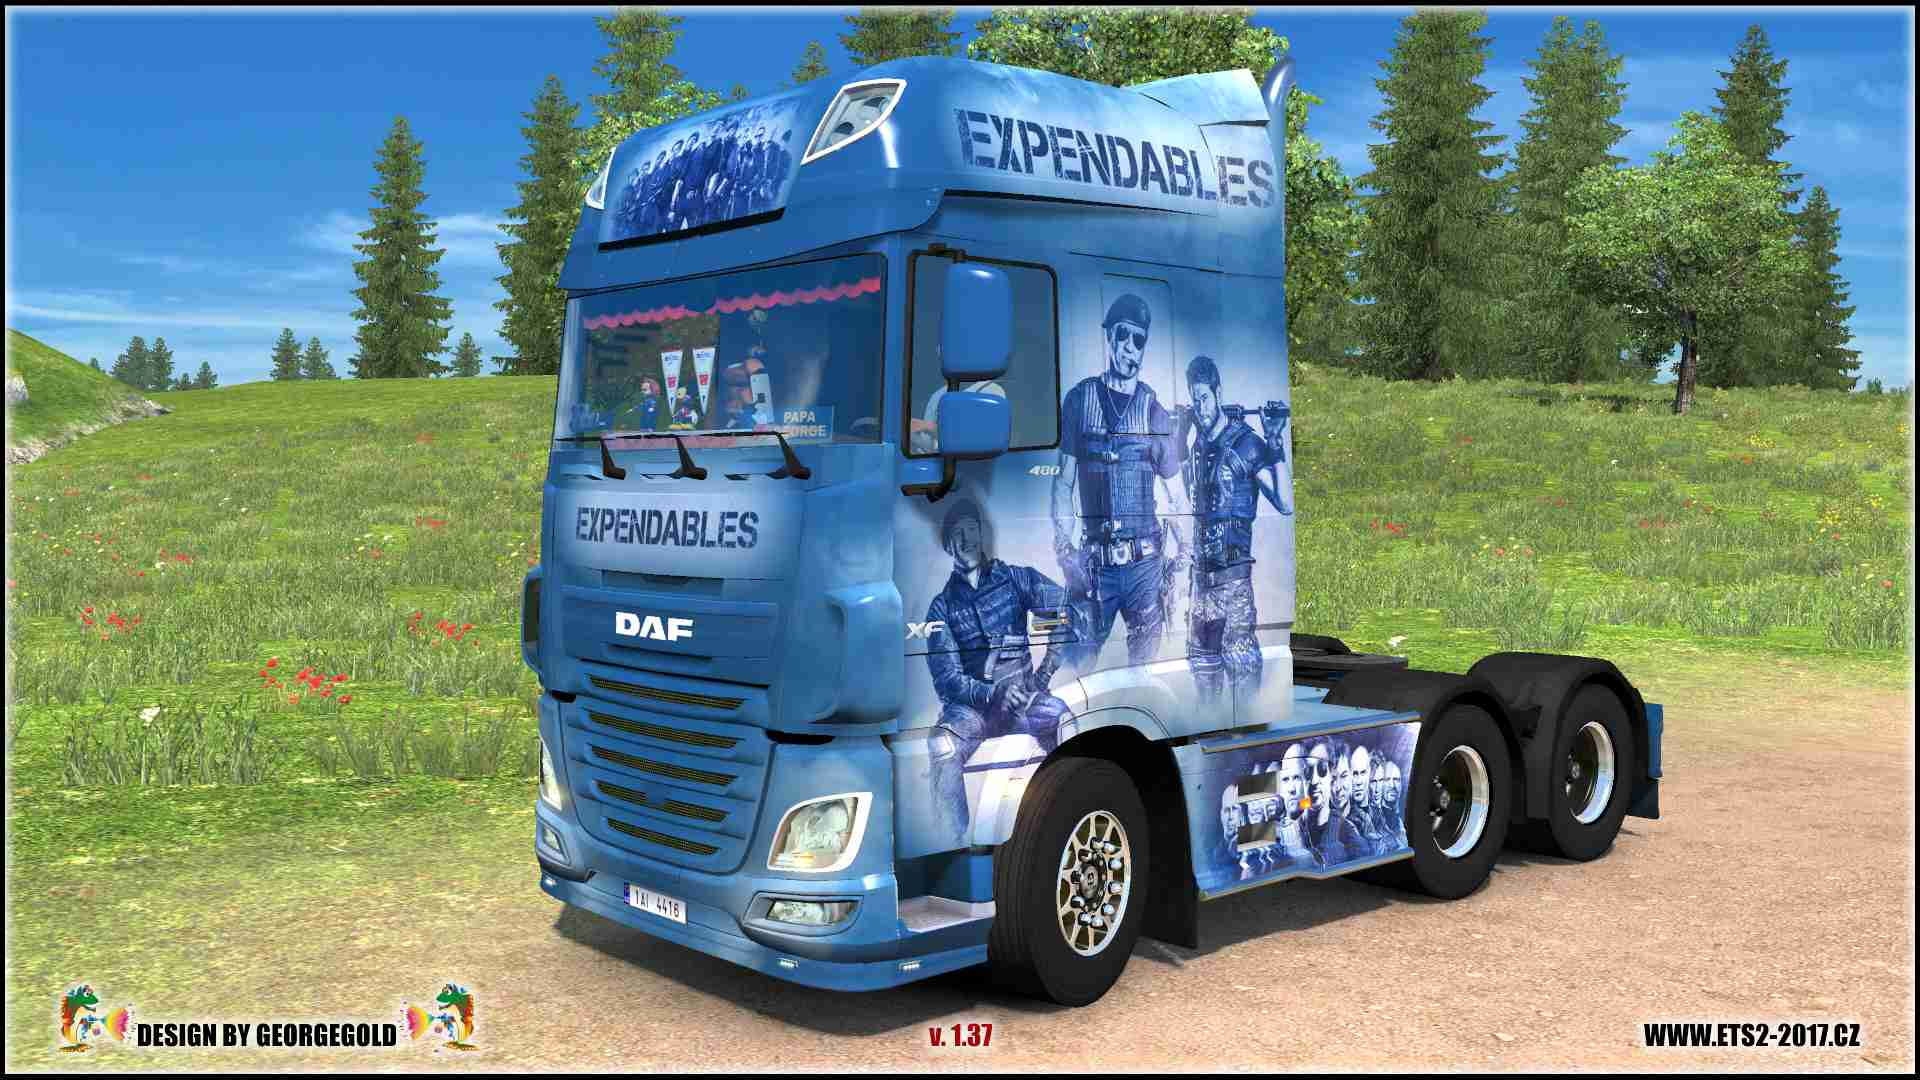 DAF XF Euro 6 Expendables